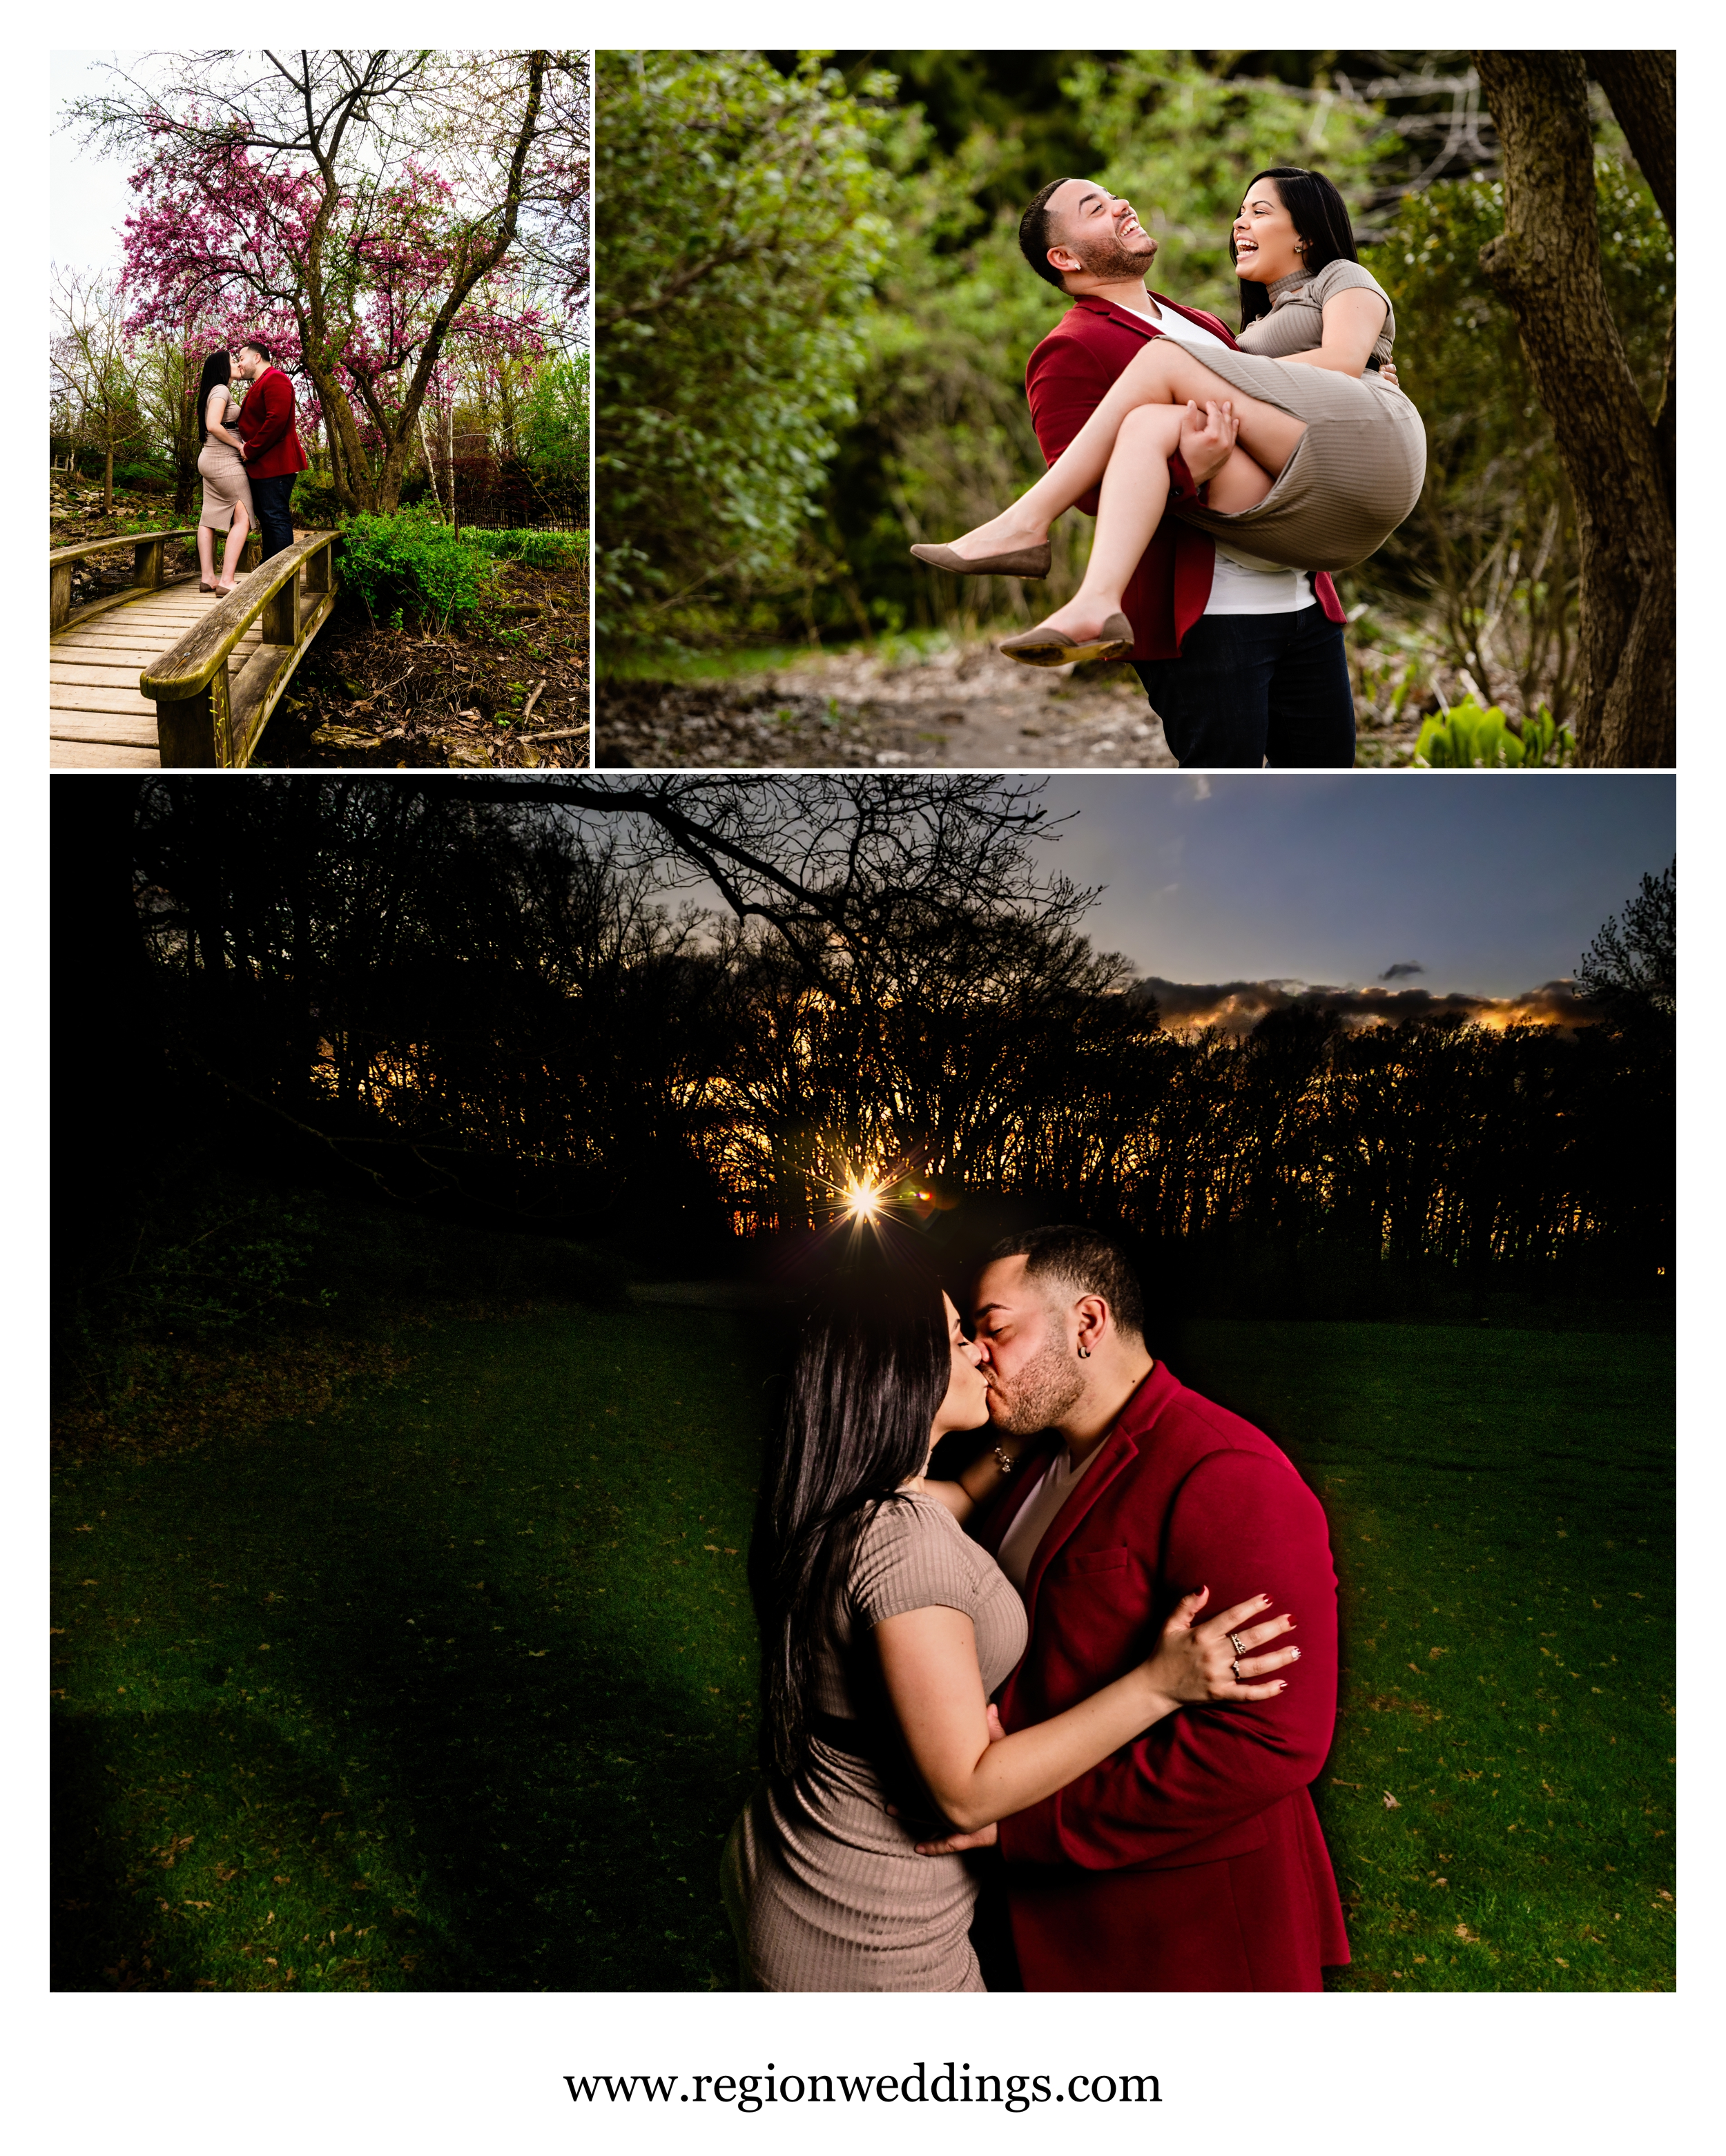 Some fun and romantic engagement photos at Ogden Park.